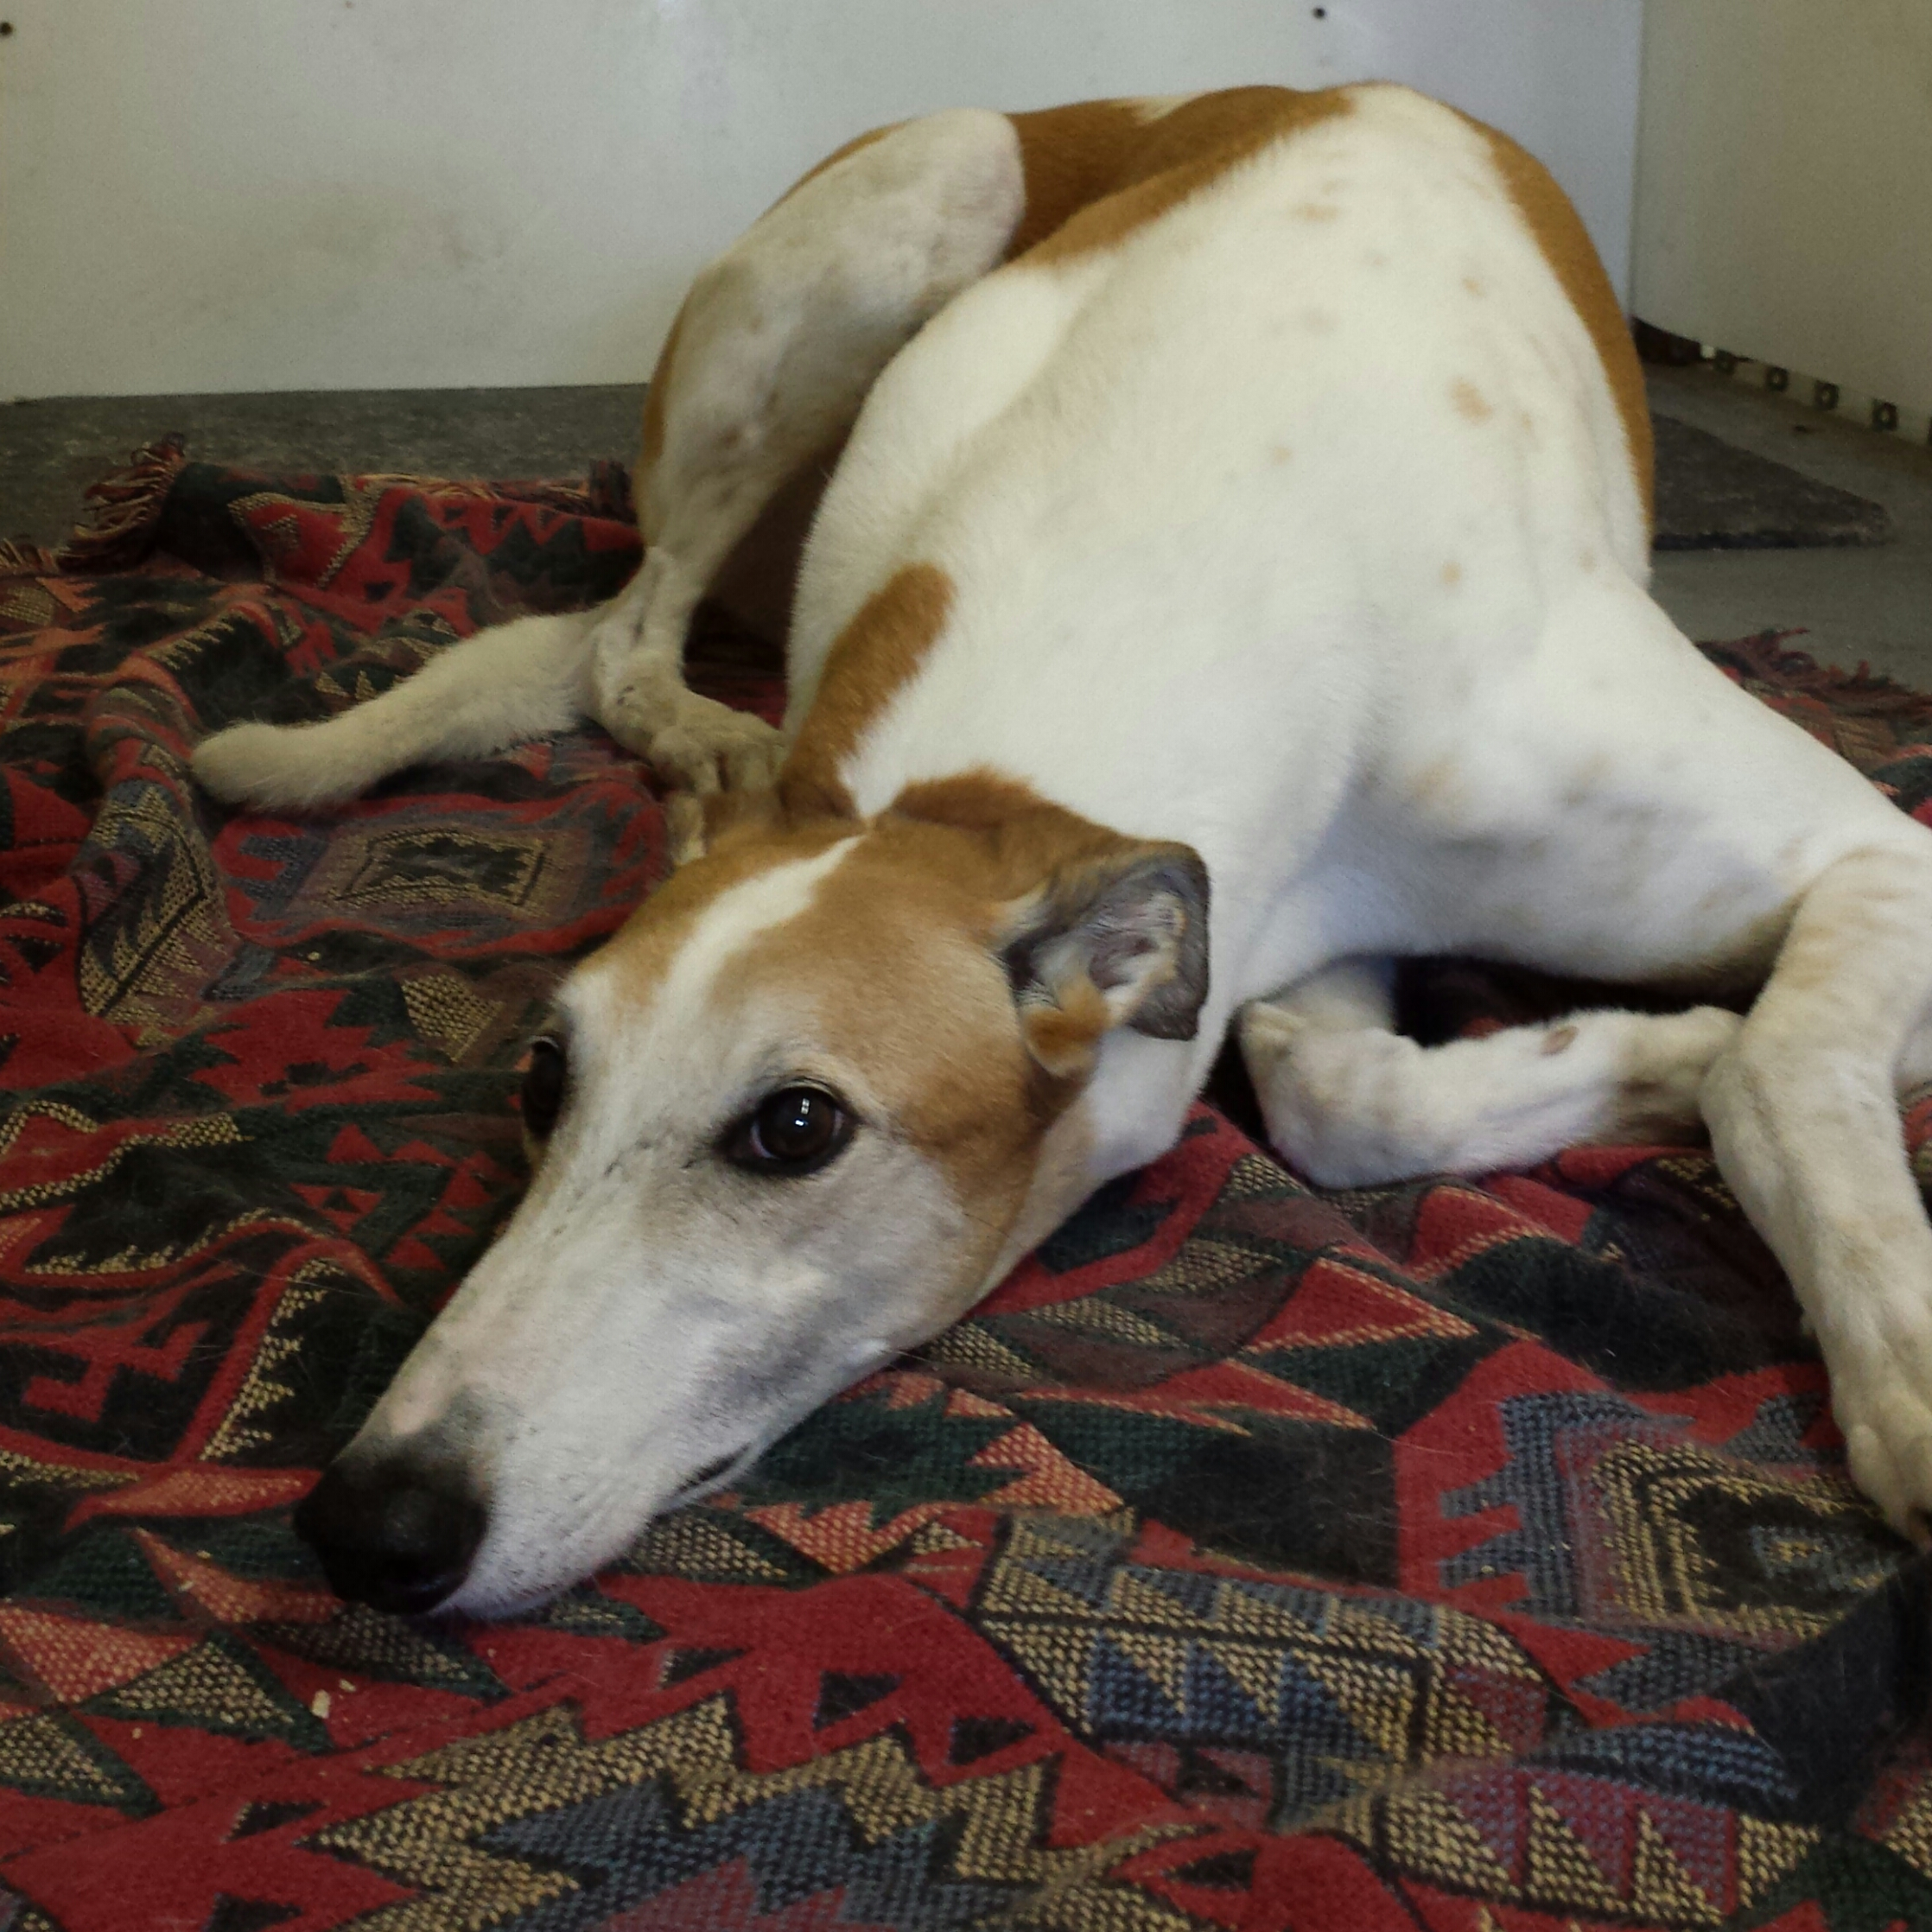 Reggie the greyhound is also best-suited for the upper building. He likes the indoor room and less activity.